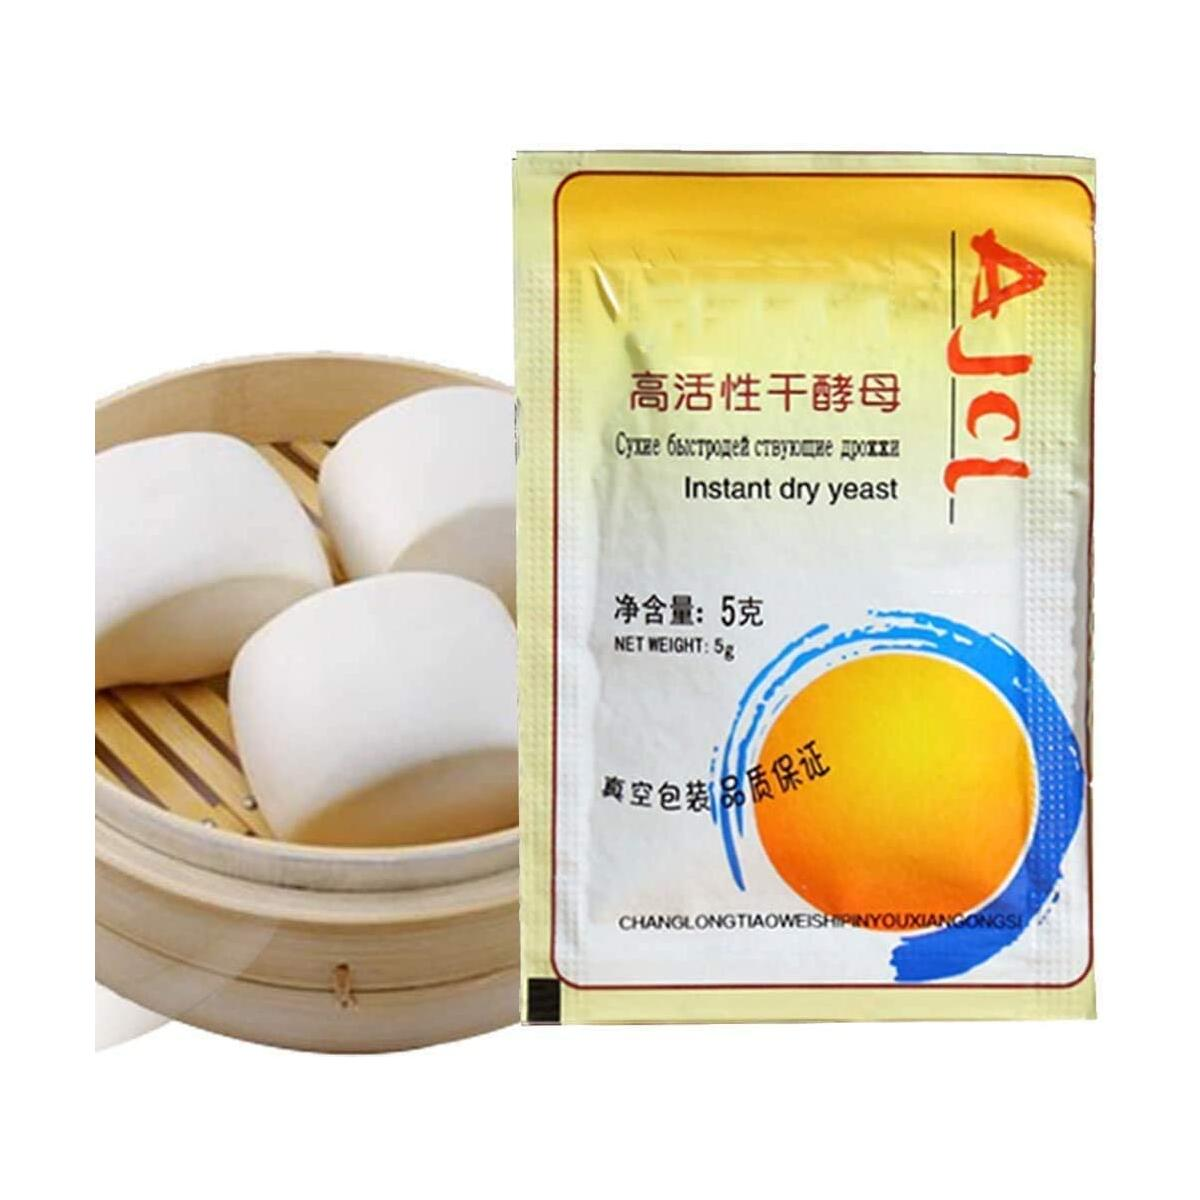 10pcs(5g/Bag)  Active Dry Yeast , Bread Yeast,Instant Dry Yeast for Bread Making, Fast Acting Instant Yeast for Baking Cake, Bread, Pizza and Sweet Dough, Gluten Free.suit for Beginner.